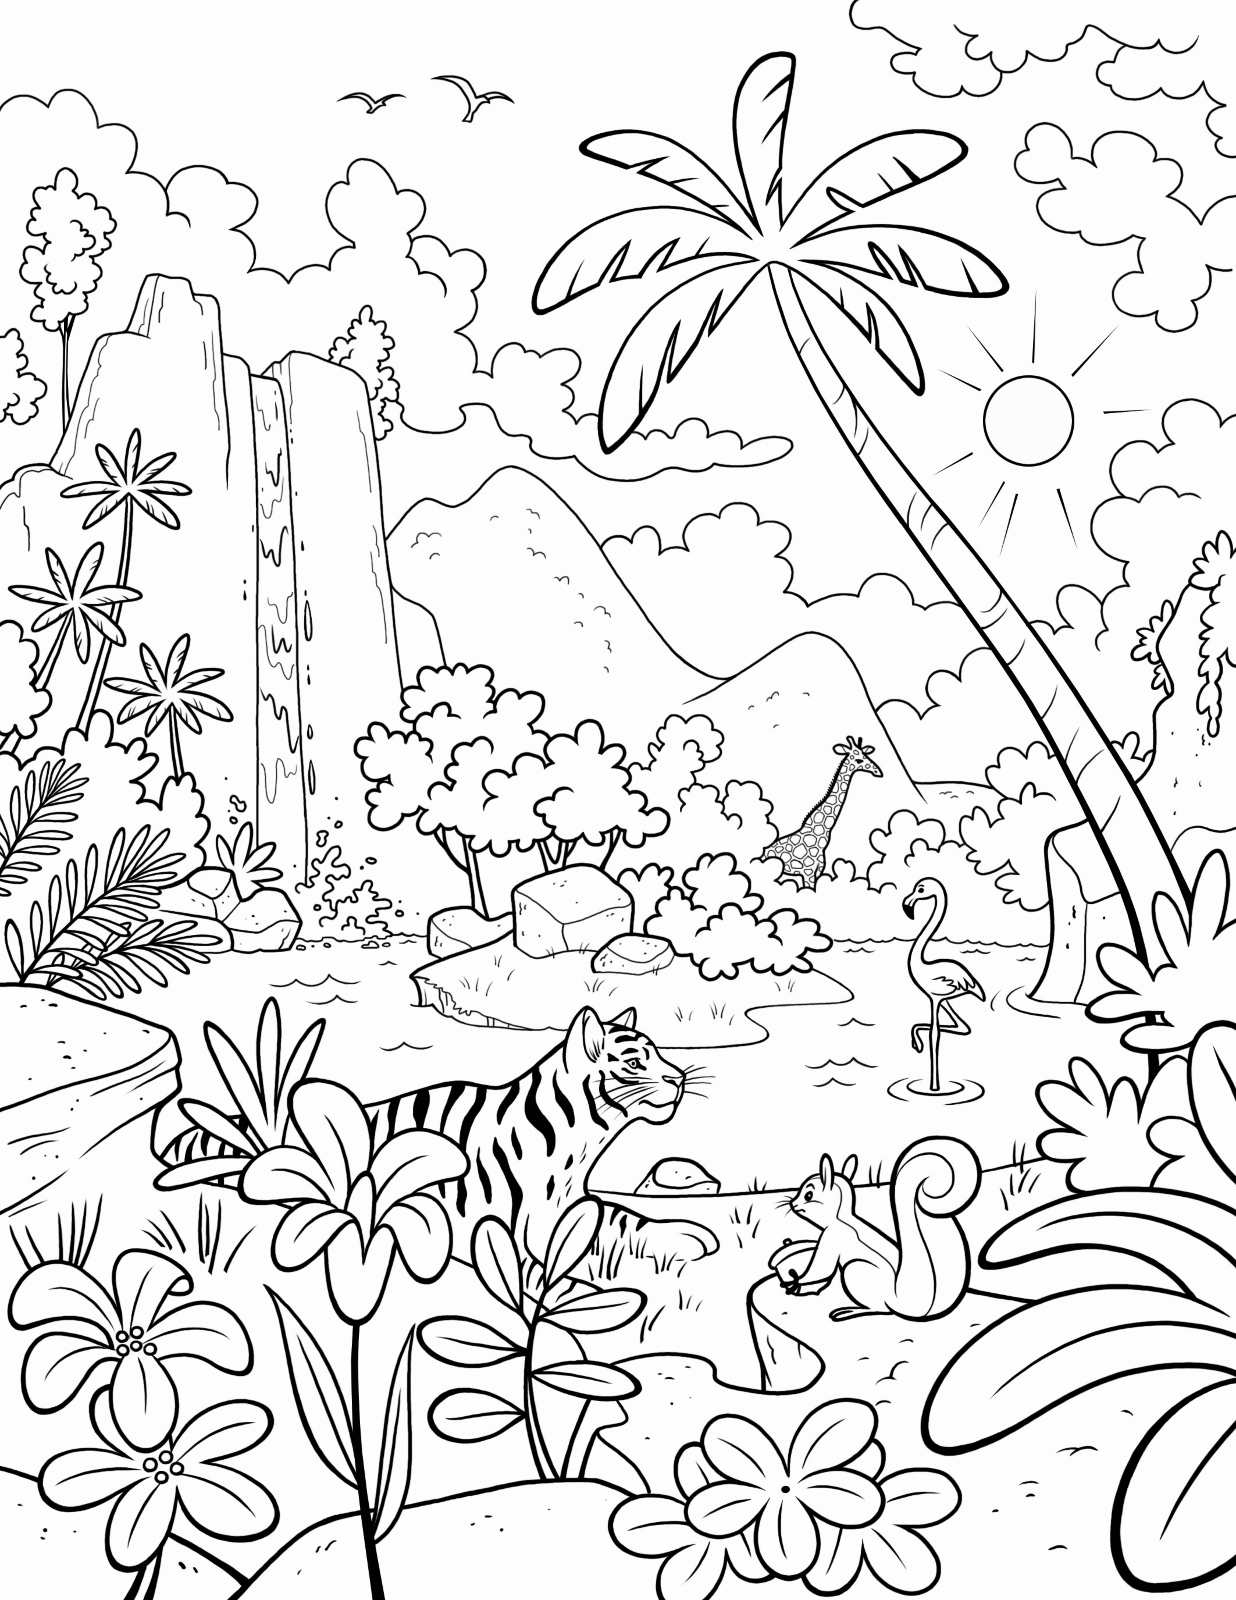 coloring sheets jungle jungle coloring pages best coloring pages for kids sheets jungle coloring